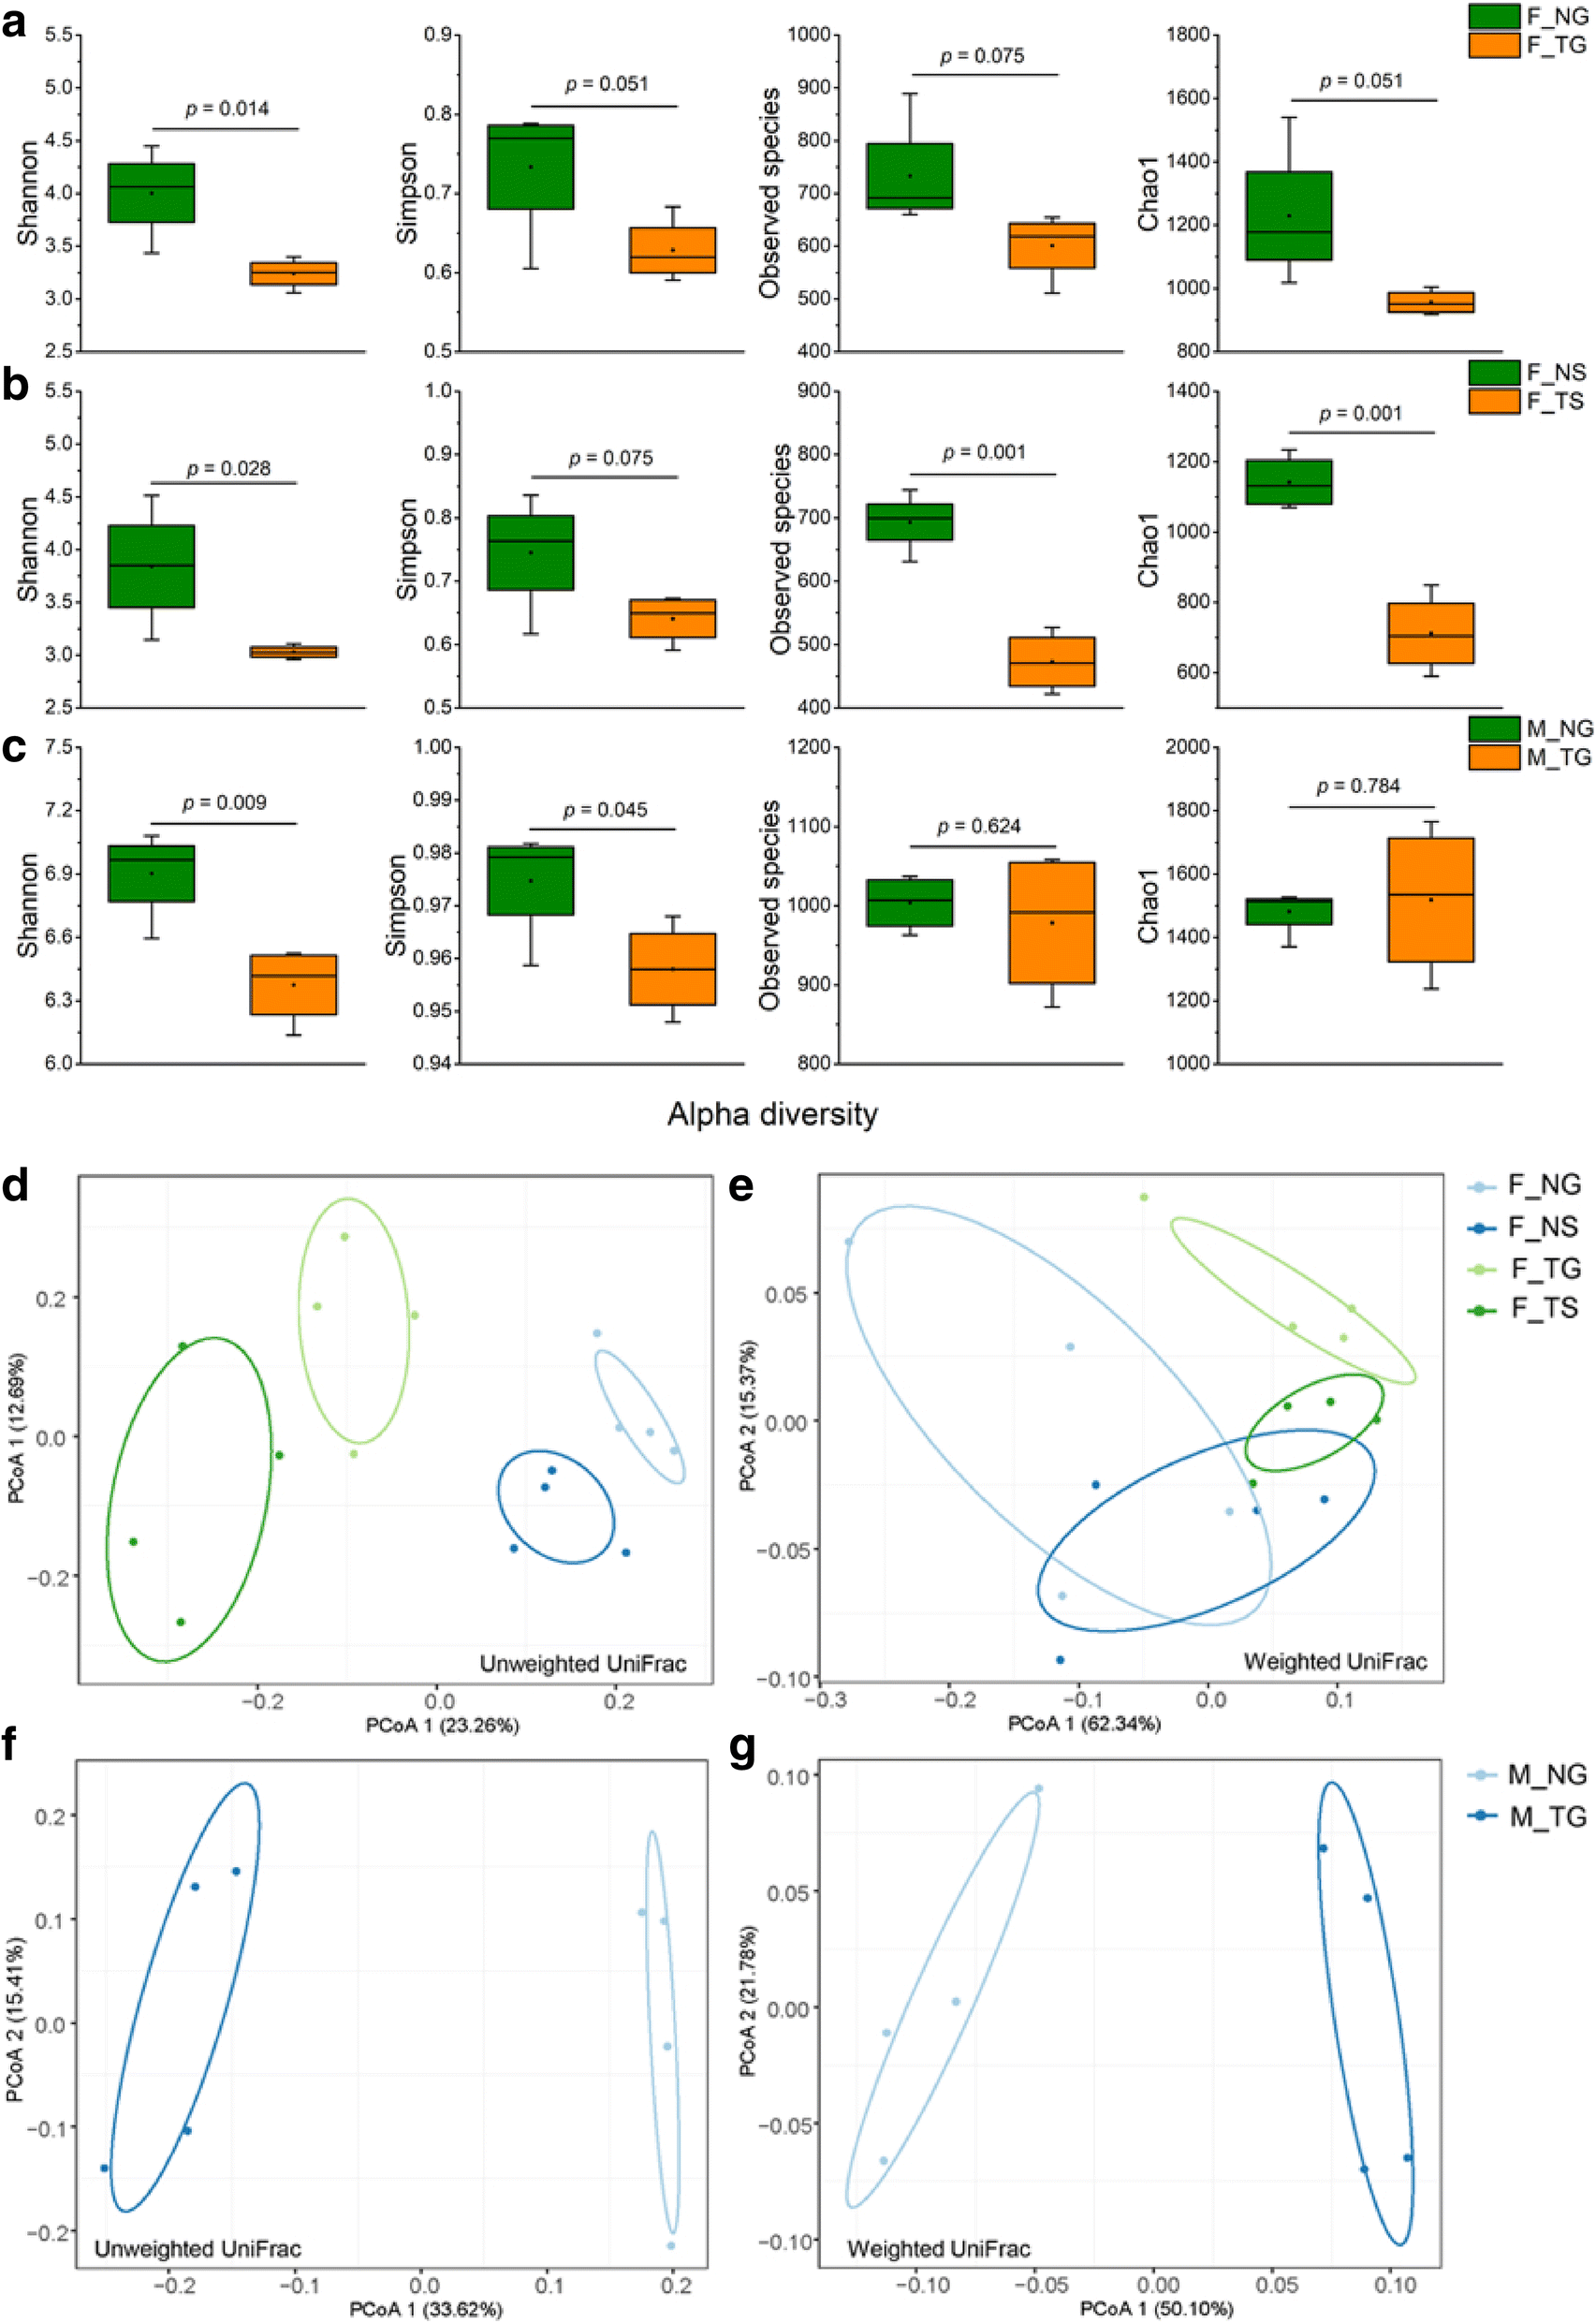 Thermal Processing Of Food Reduces Gut Microbiota Diversity Of The